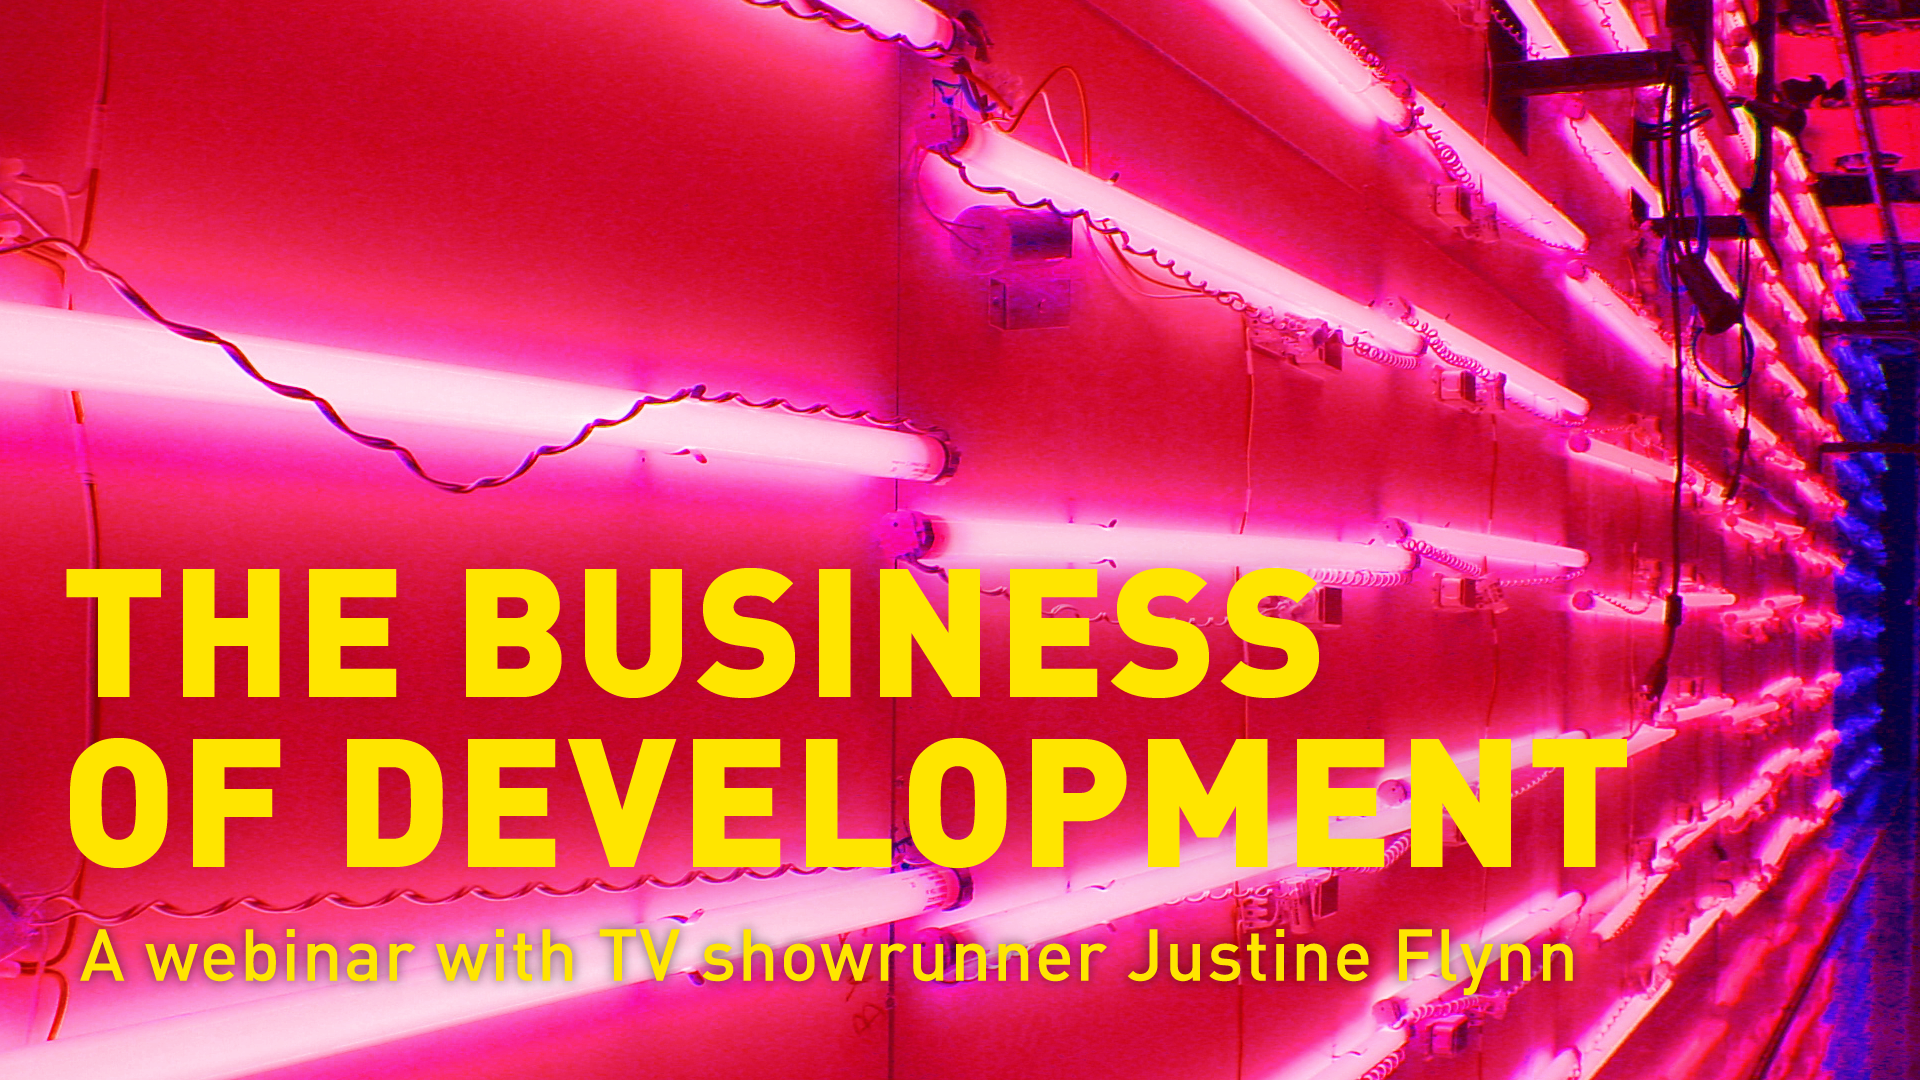 THE BUSINESS OF DEVELOPMENT: A webinar with TV showrunner Justine Flynn - Information & Cultural Exchange